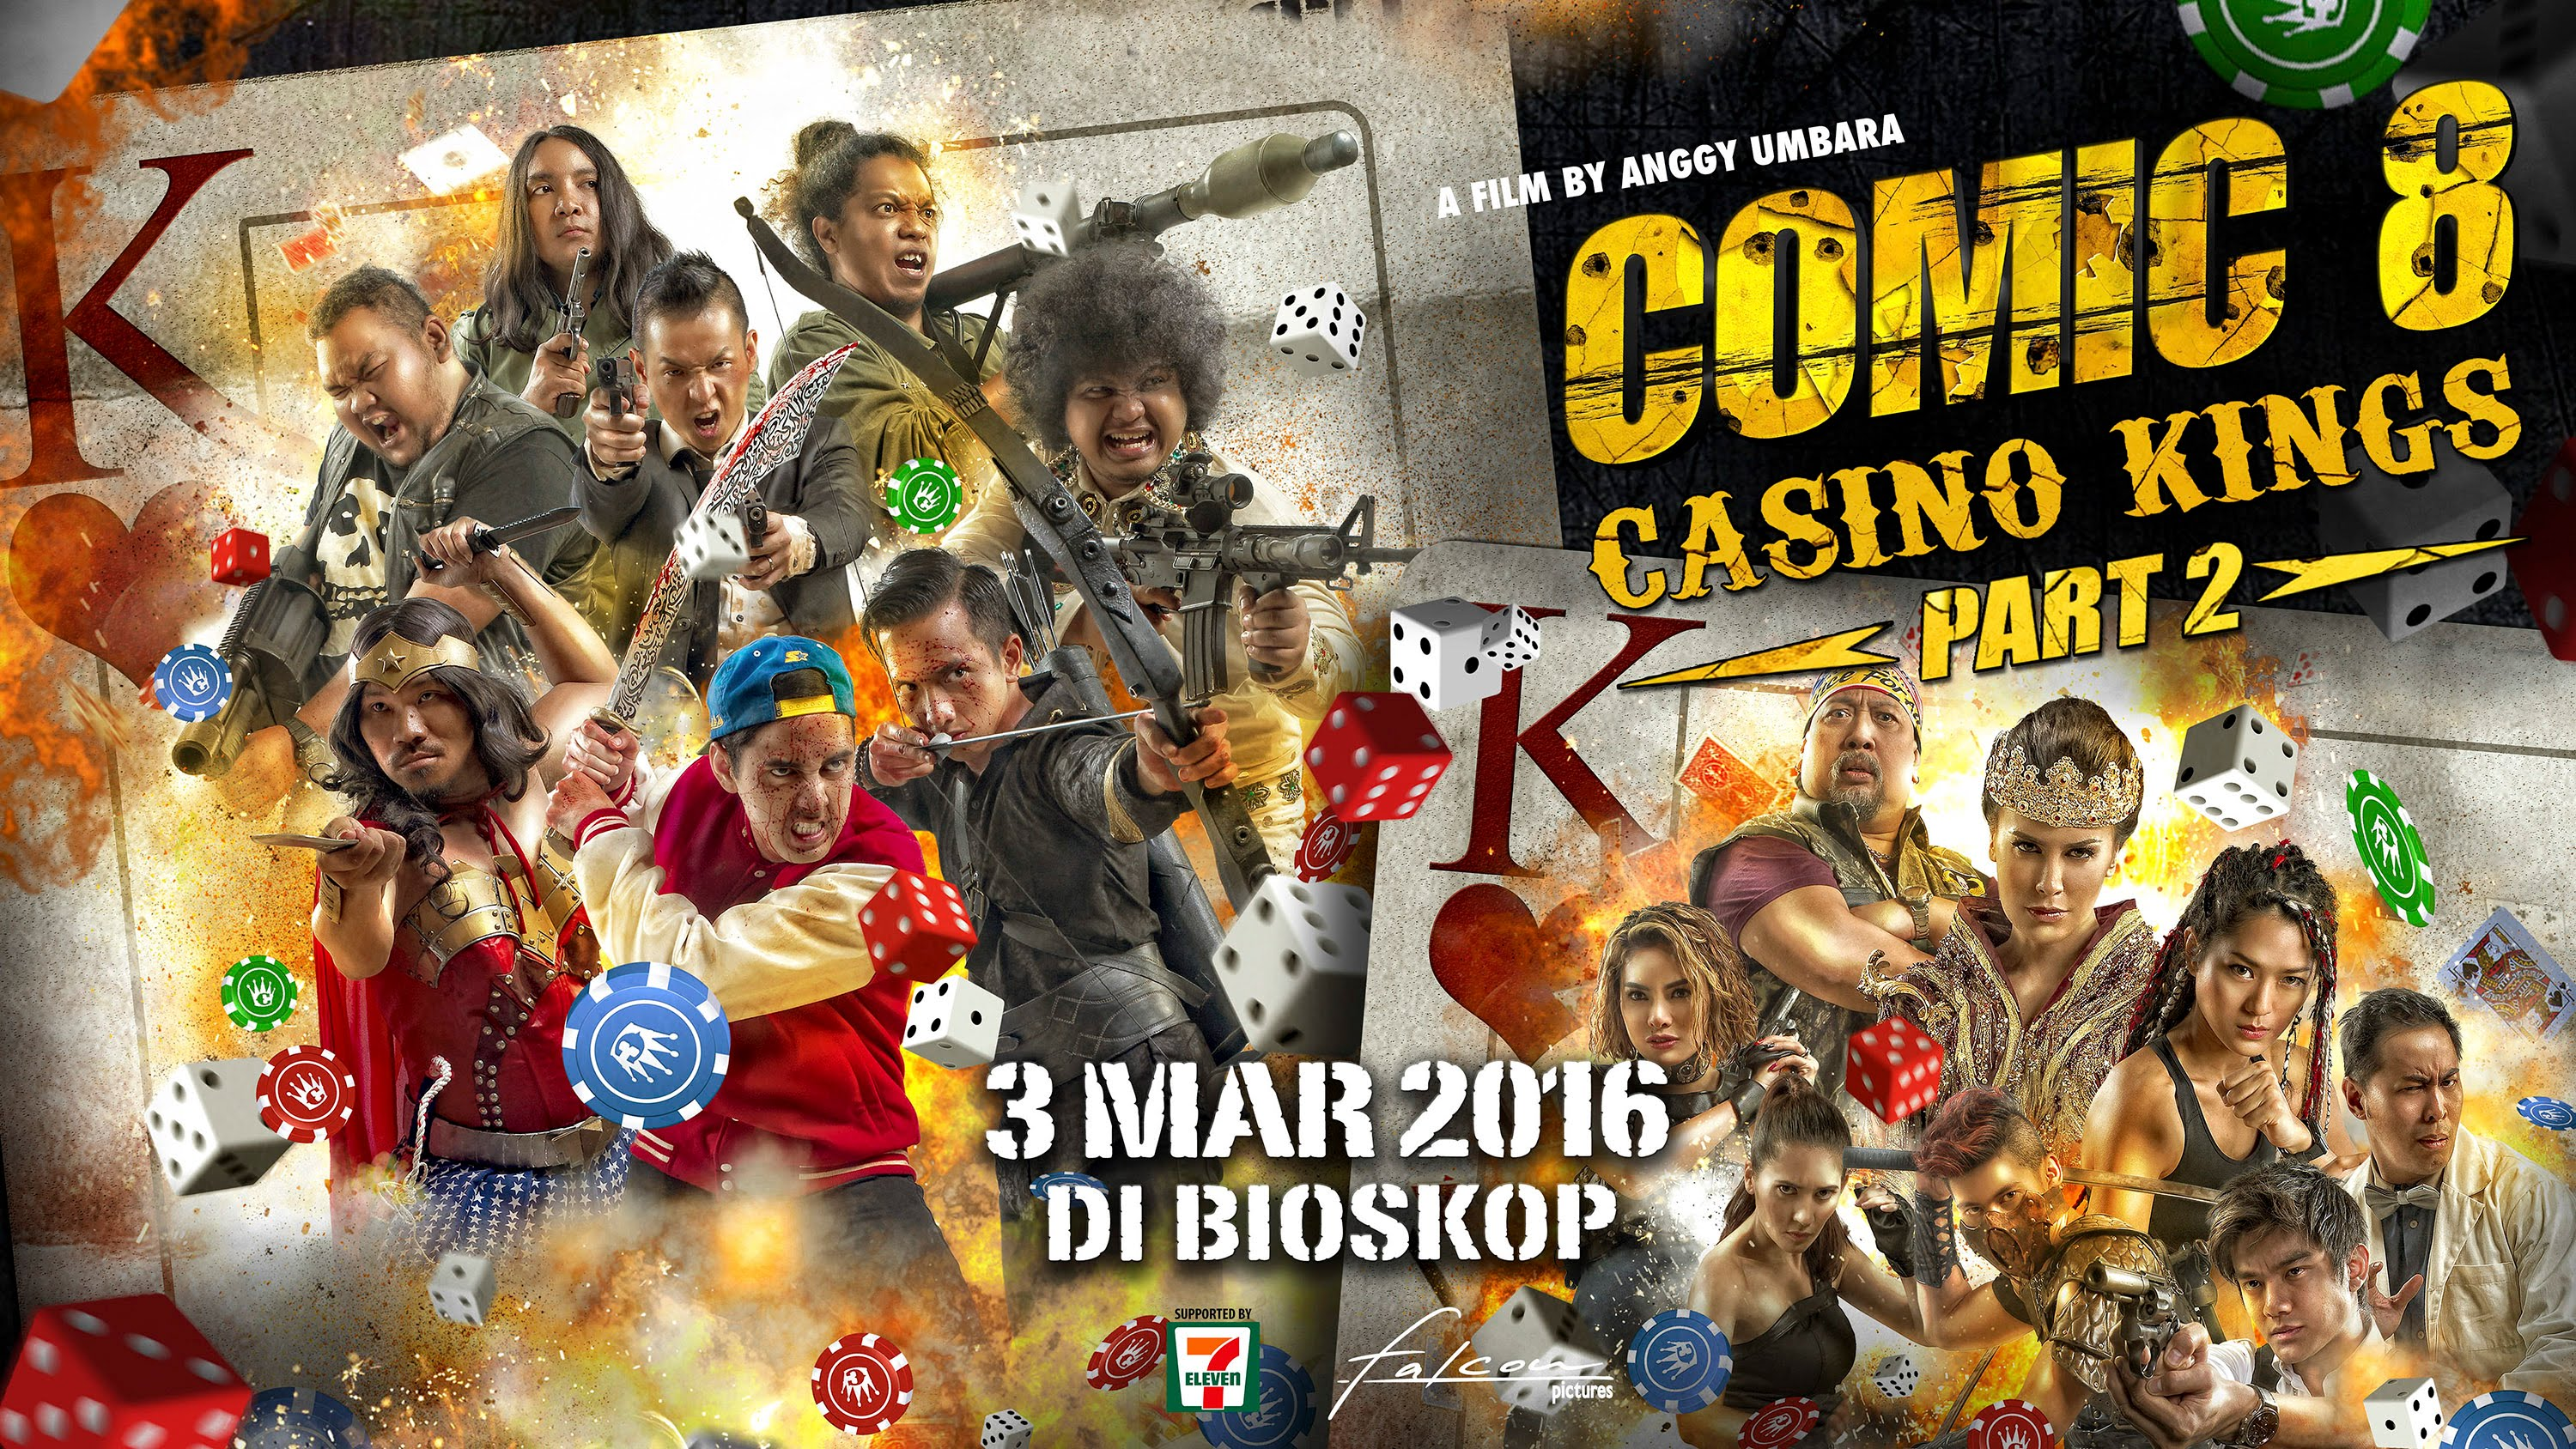 REVIEW: Comic 8: Casino Kings Part 2, Pertarungan Agen Rahasia